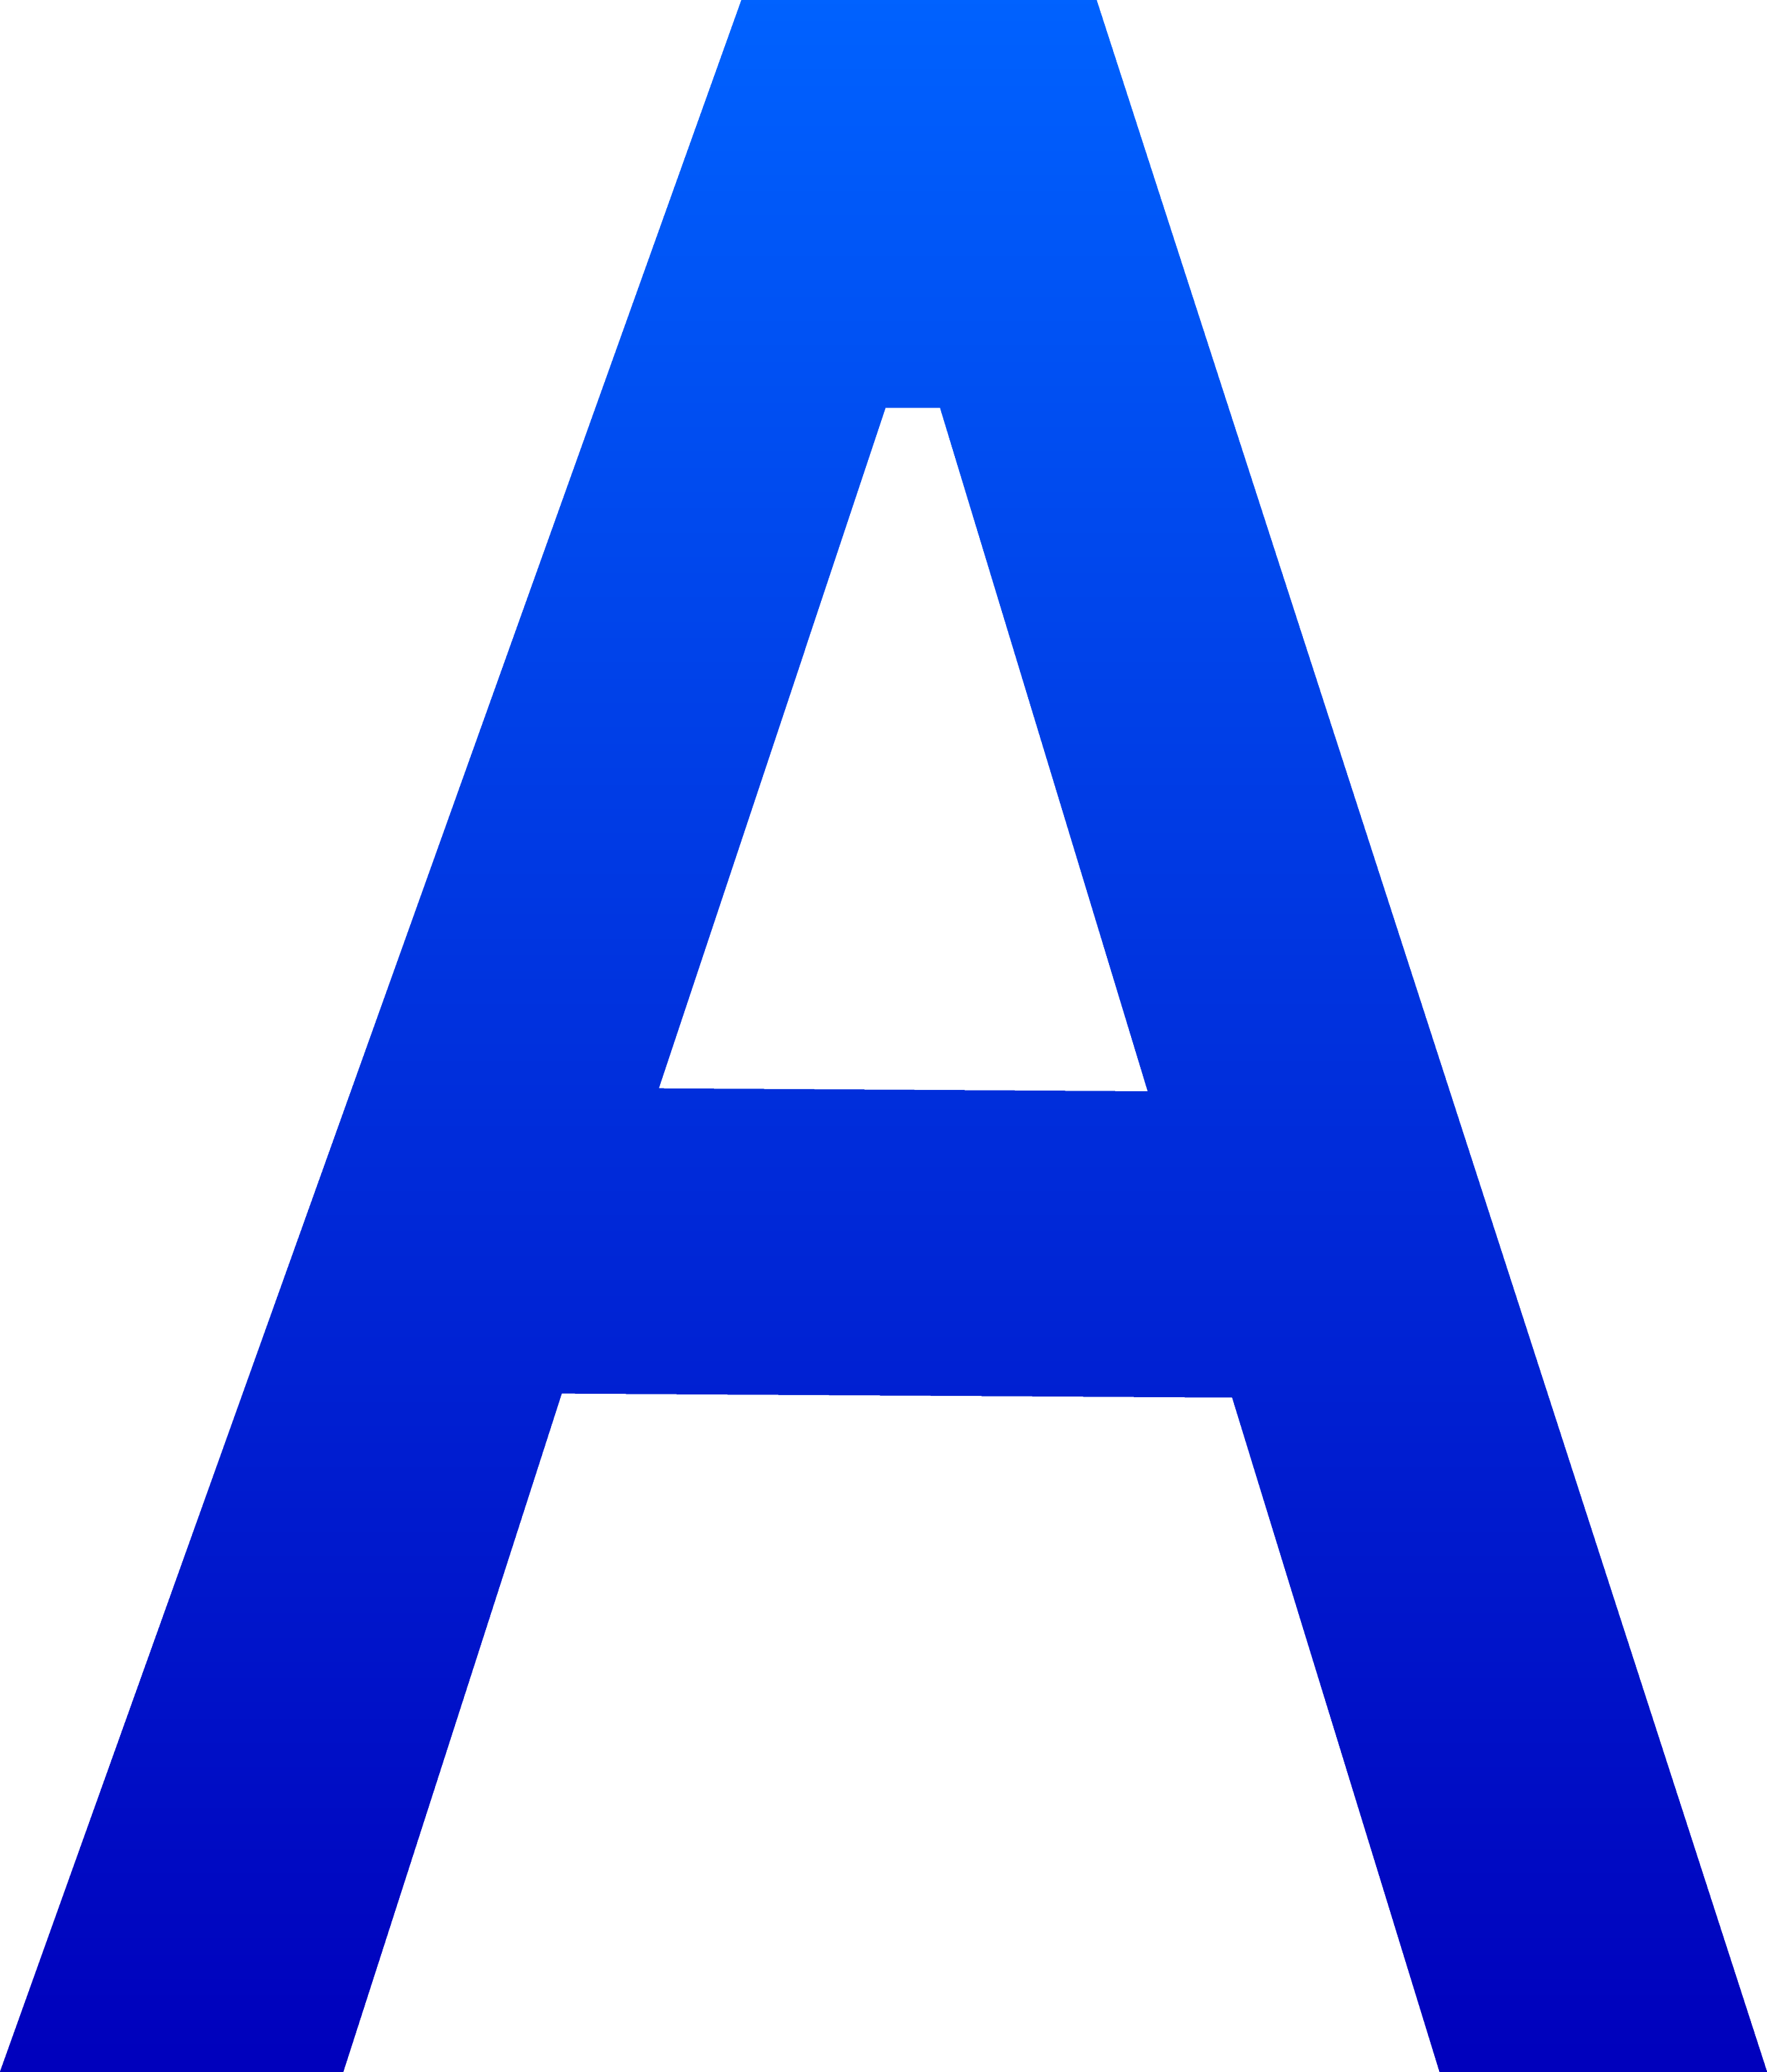 The Letter A   Lessons   Tes Teach